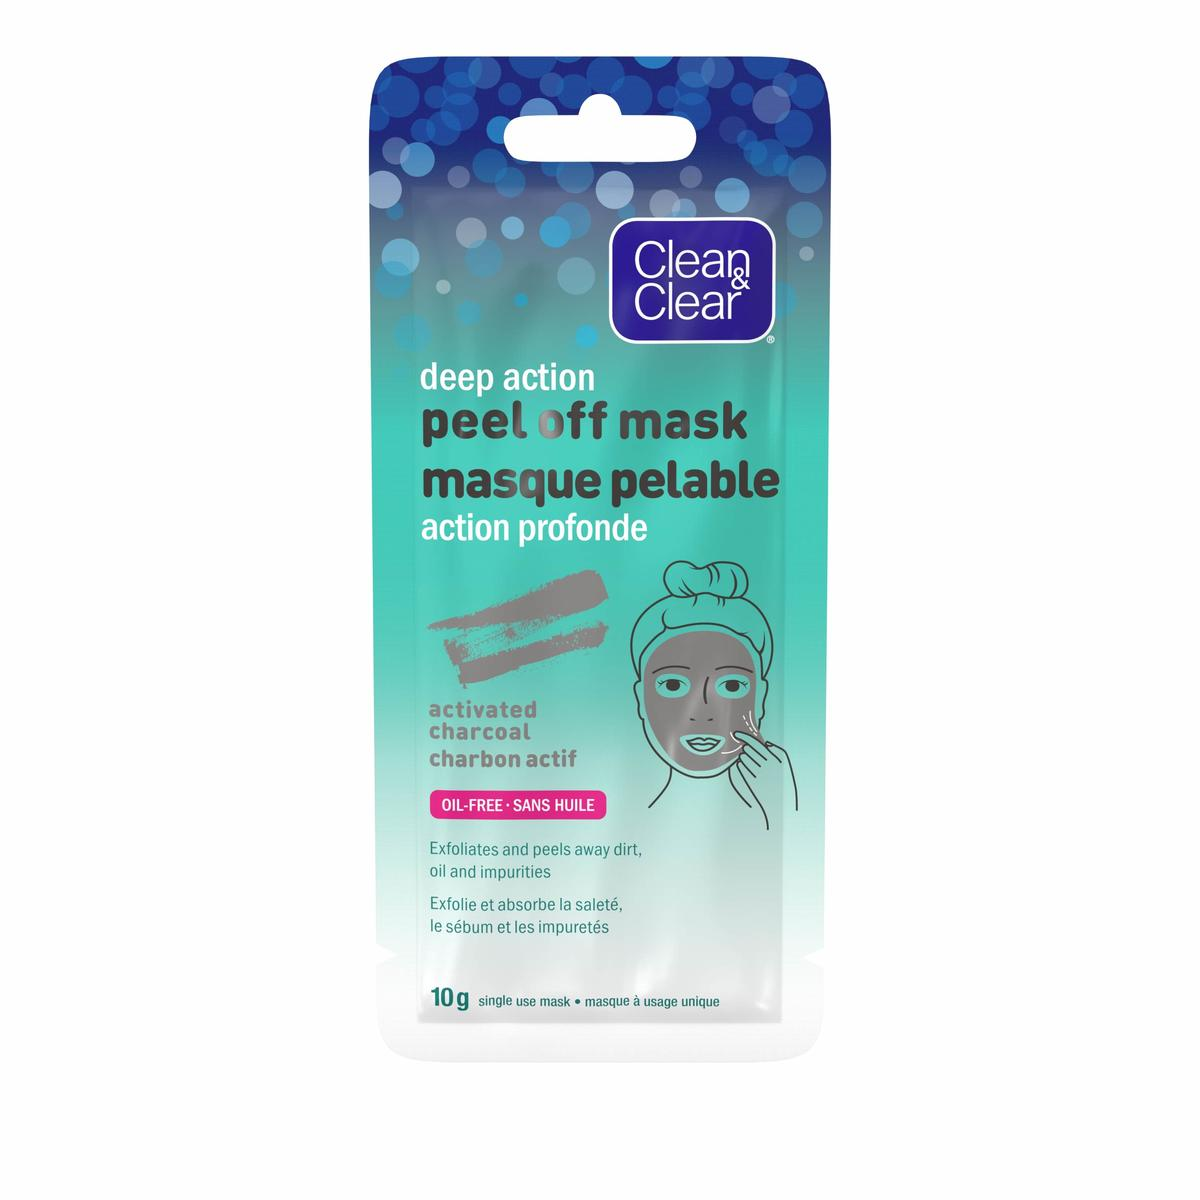 Clean and Clear peel off mask with activated charcoal pack